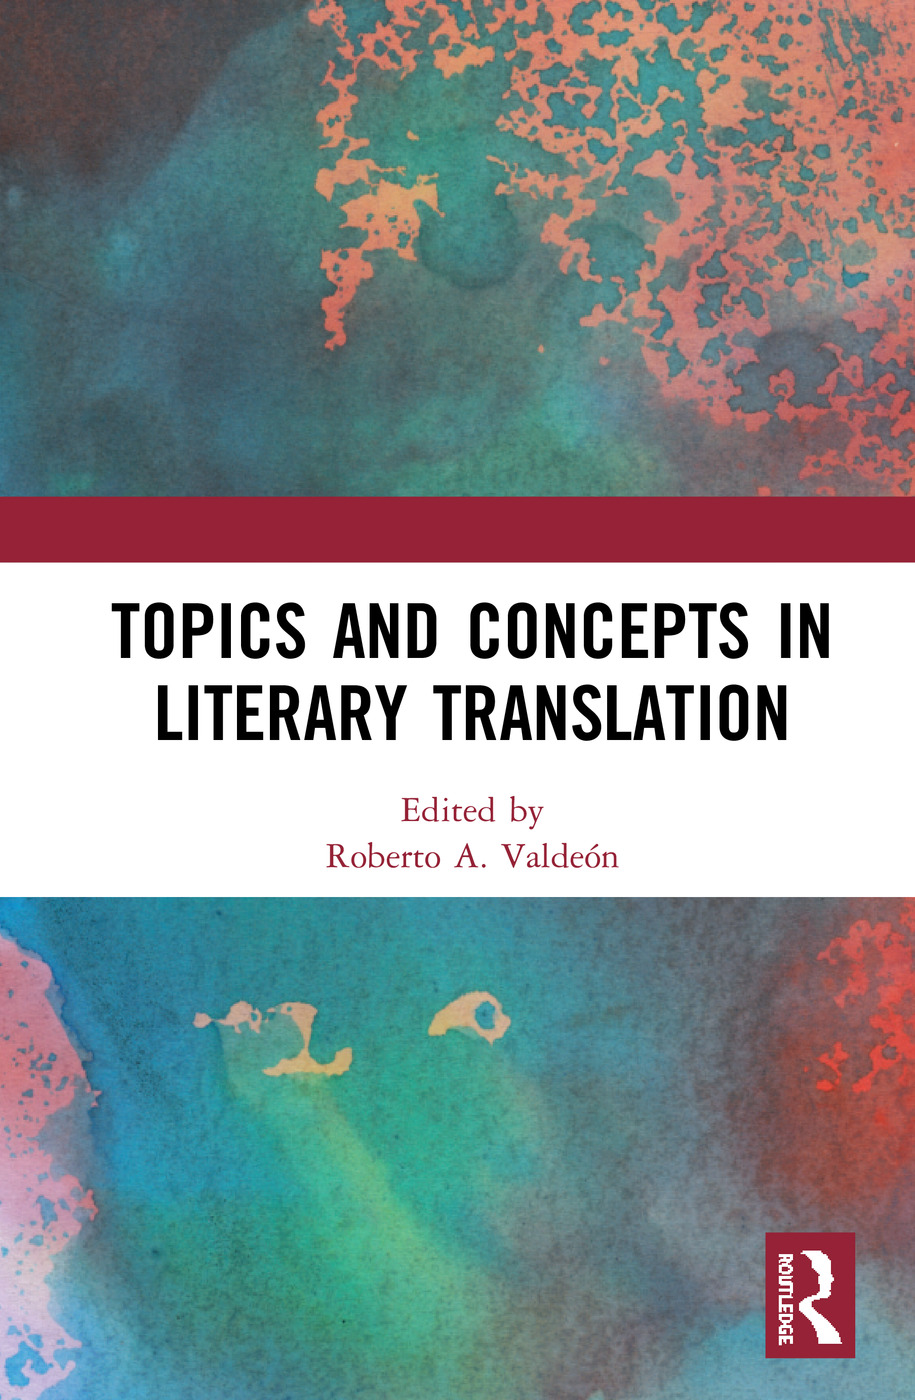 Topics and Concepts in Literary Translation book cover